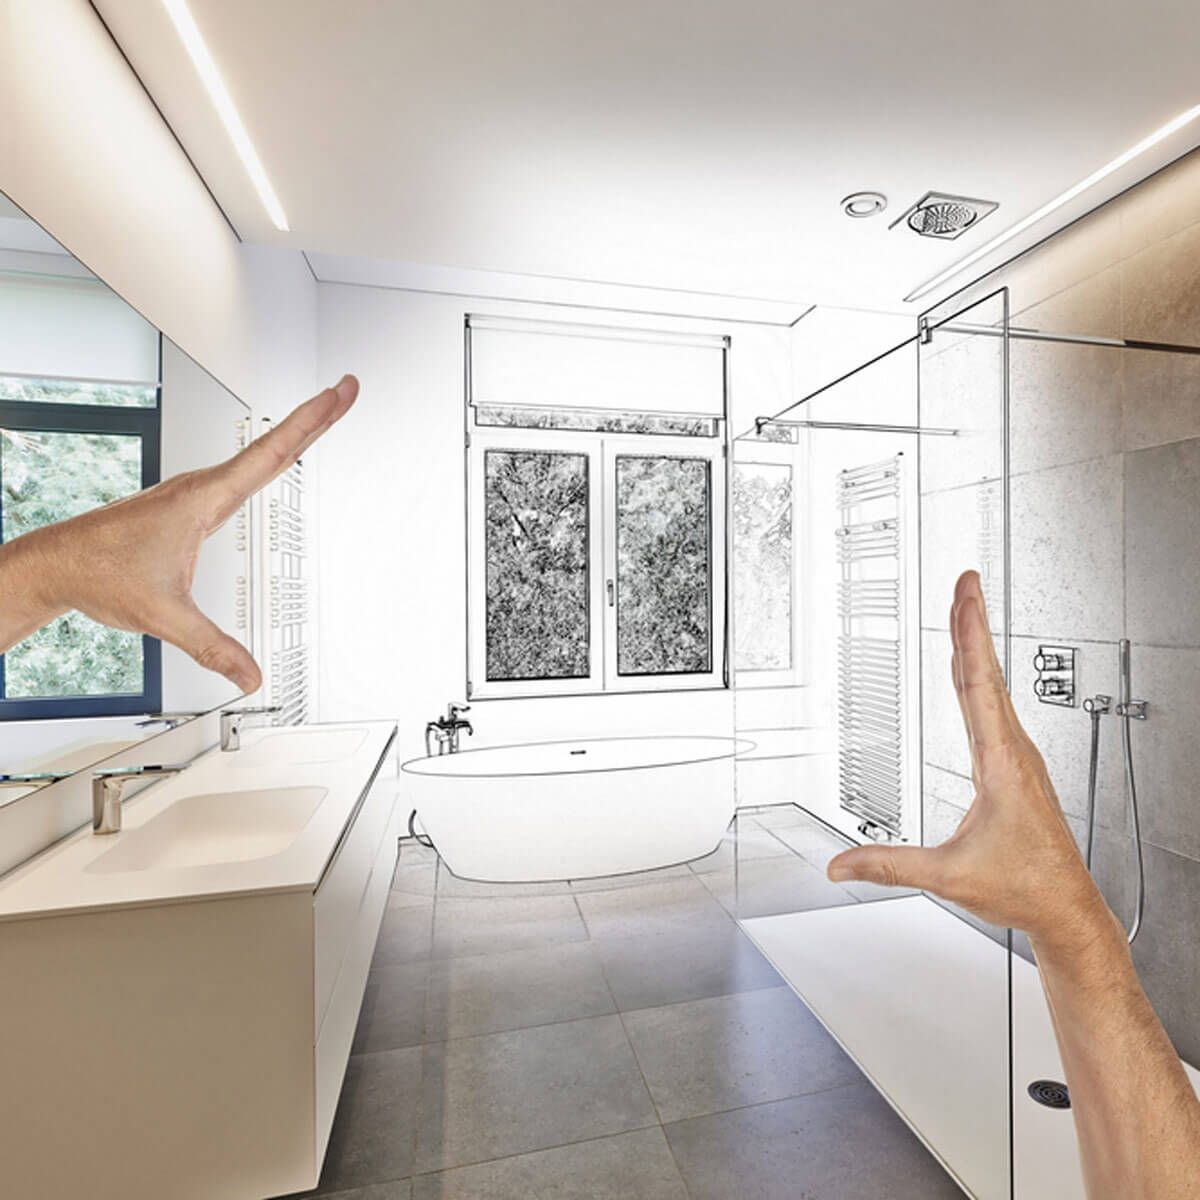 Kitchen And Bathroom Remodeling Contractors: 20 Projects That Will Actually Hurt Your Home's Resale